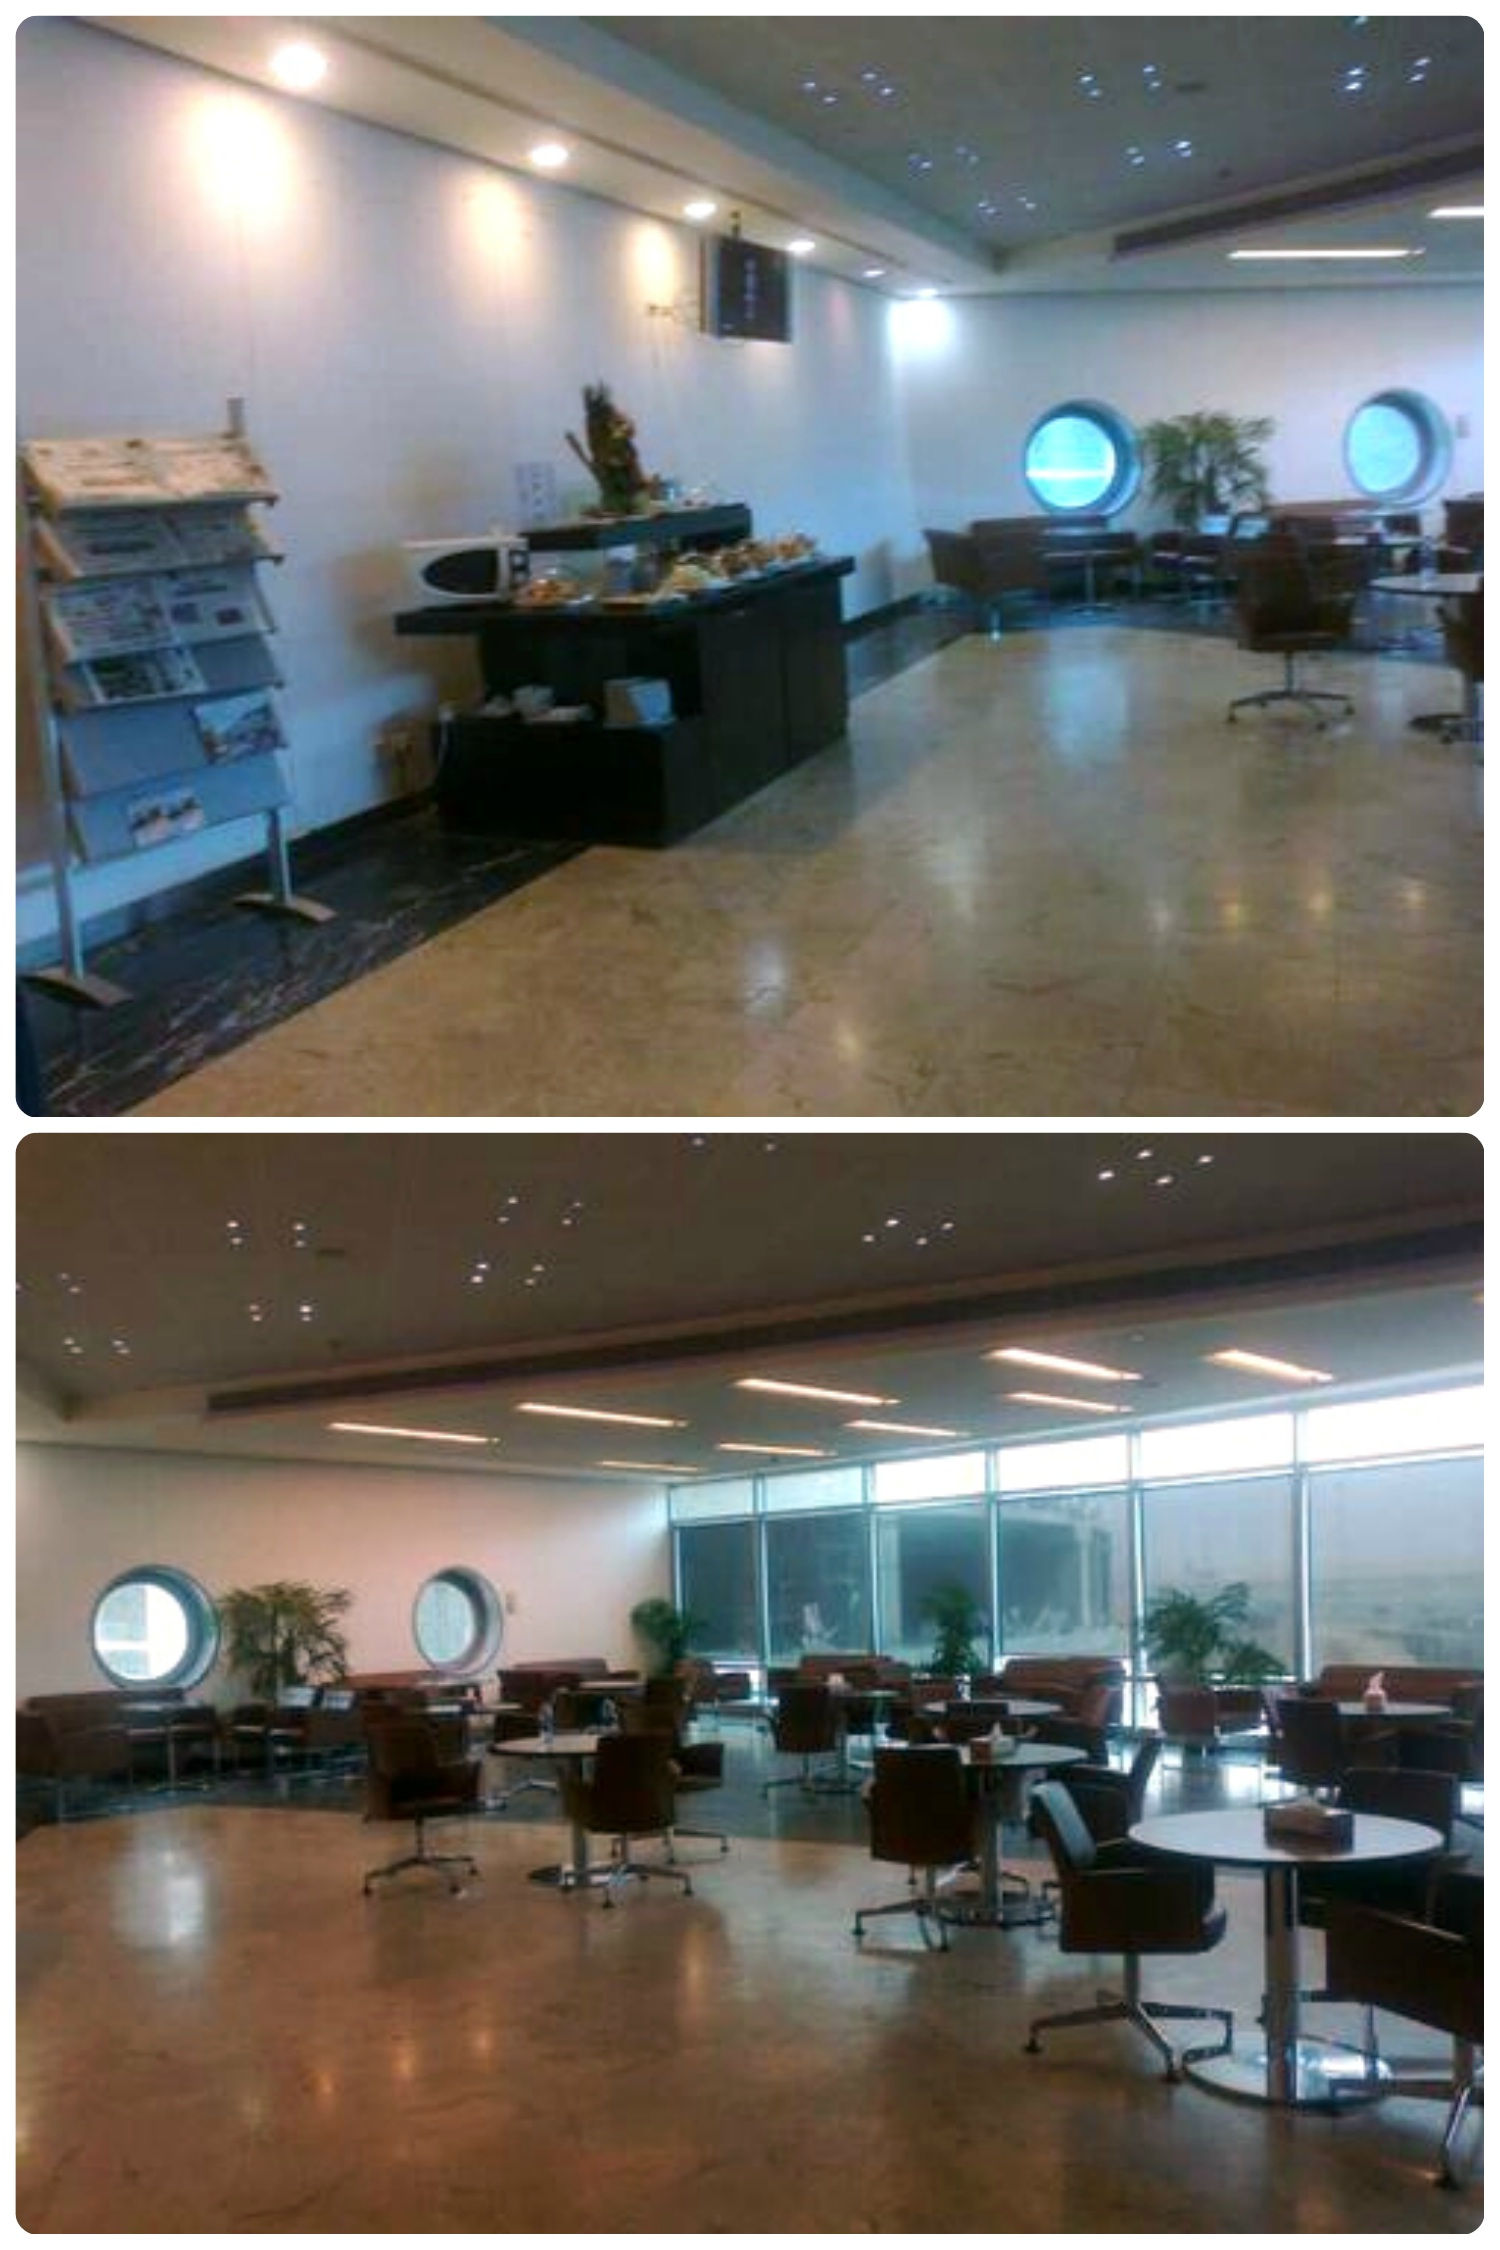 The First Class Lounge in Terminal 3 of the Cairo International Airport (CAI).